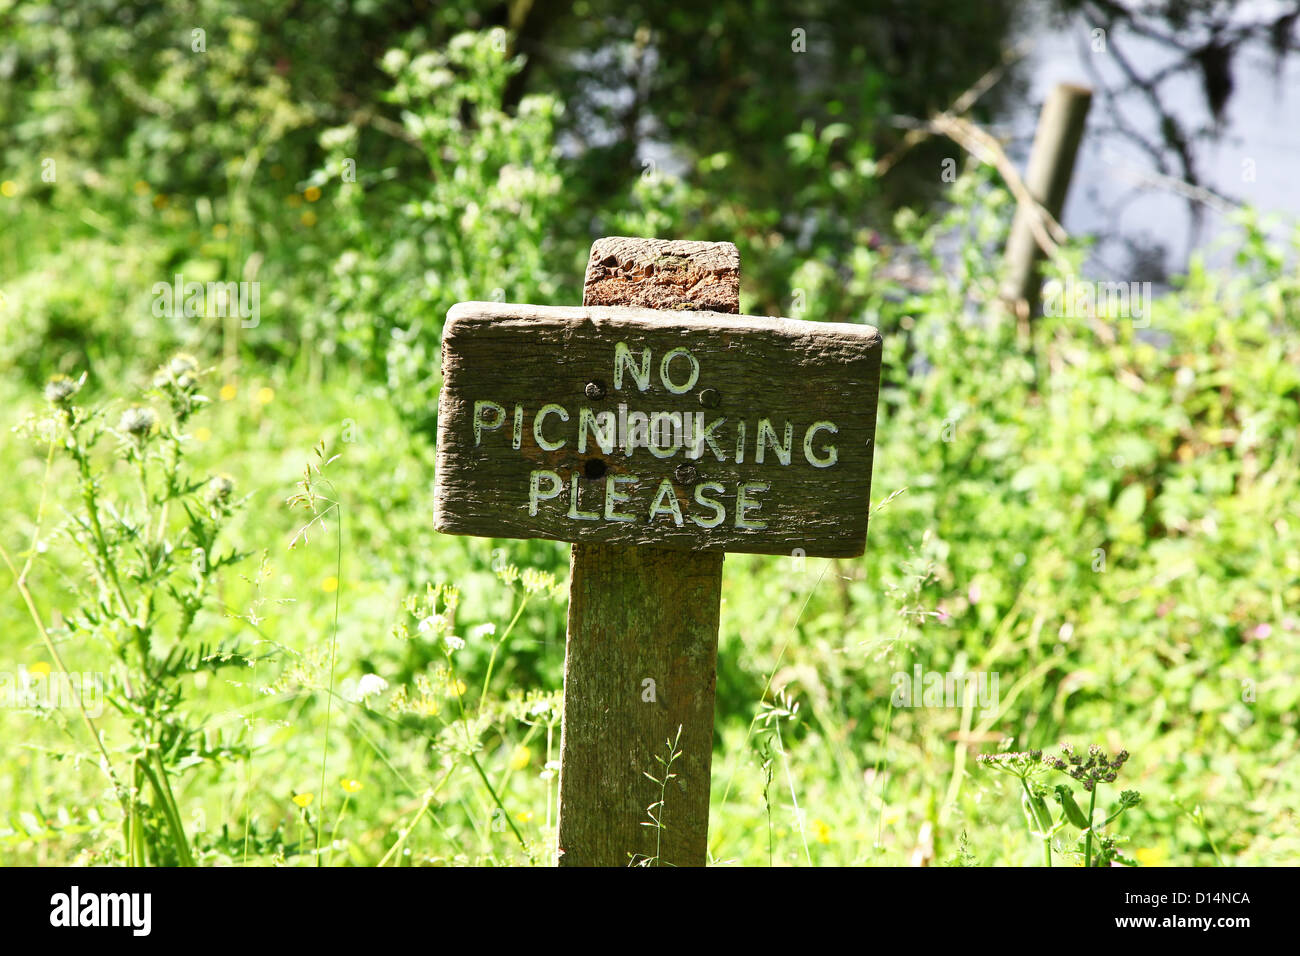 A wooden sign in the countryside saying no Picnicking please - Stock Image